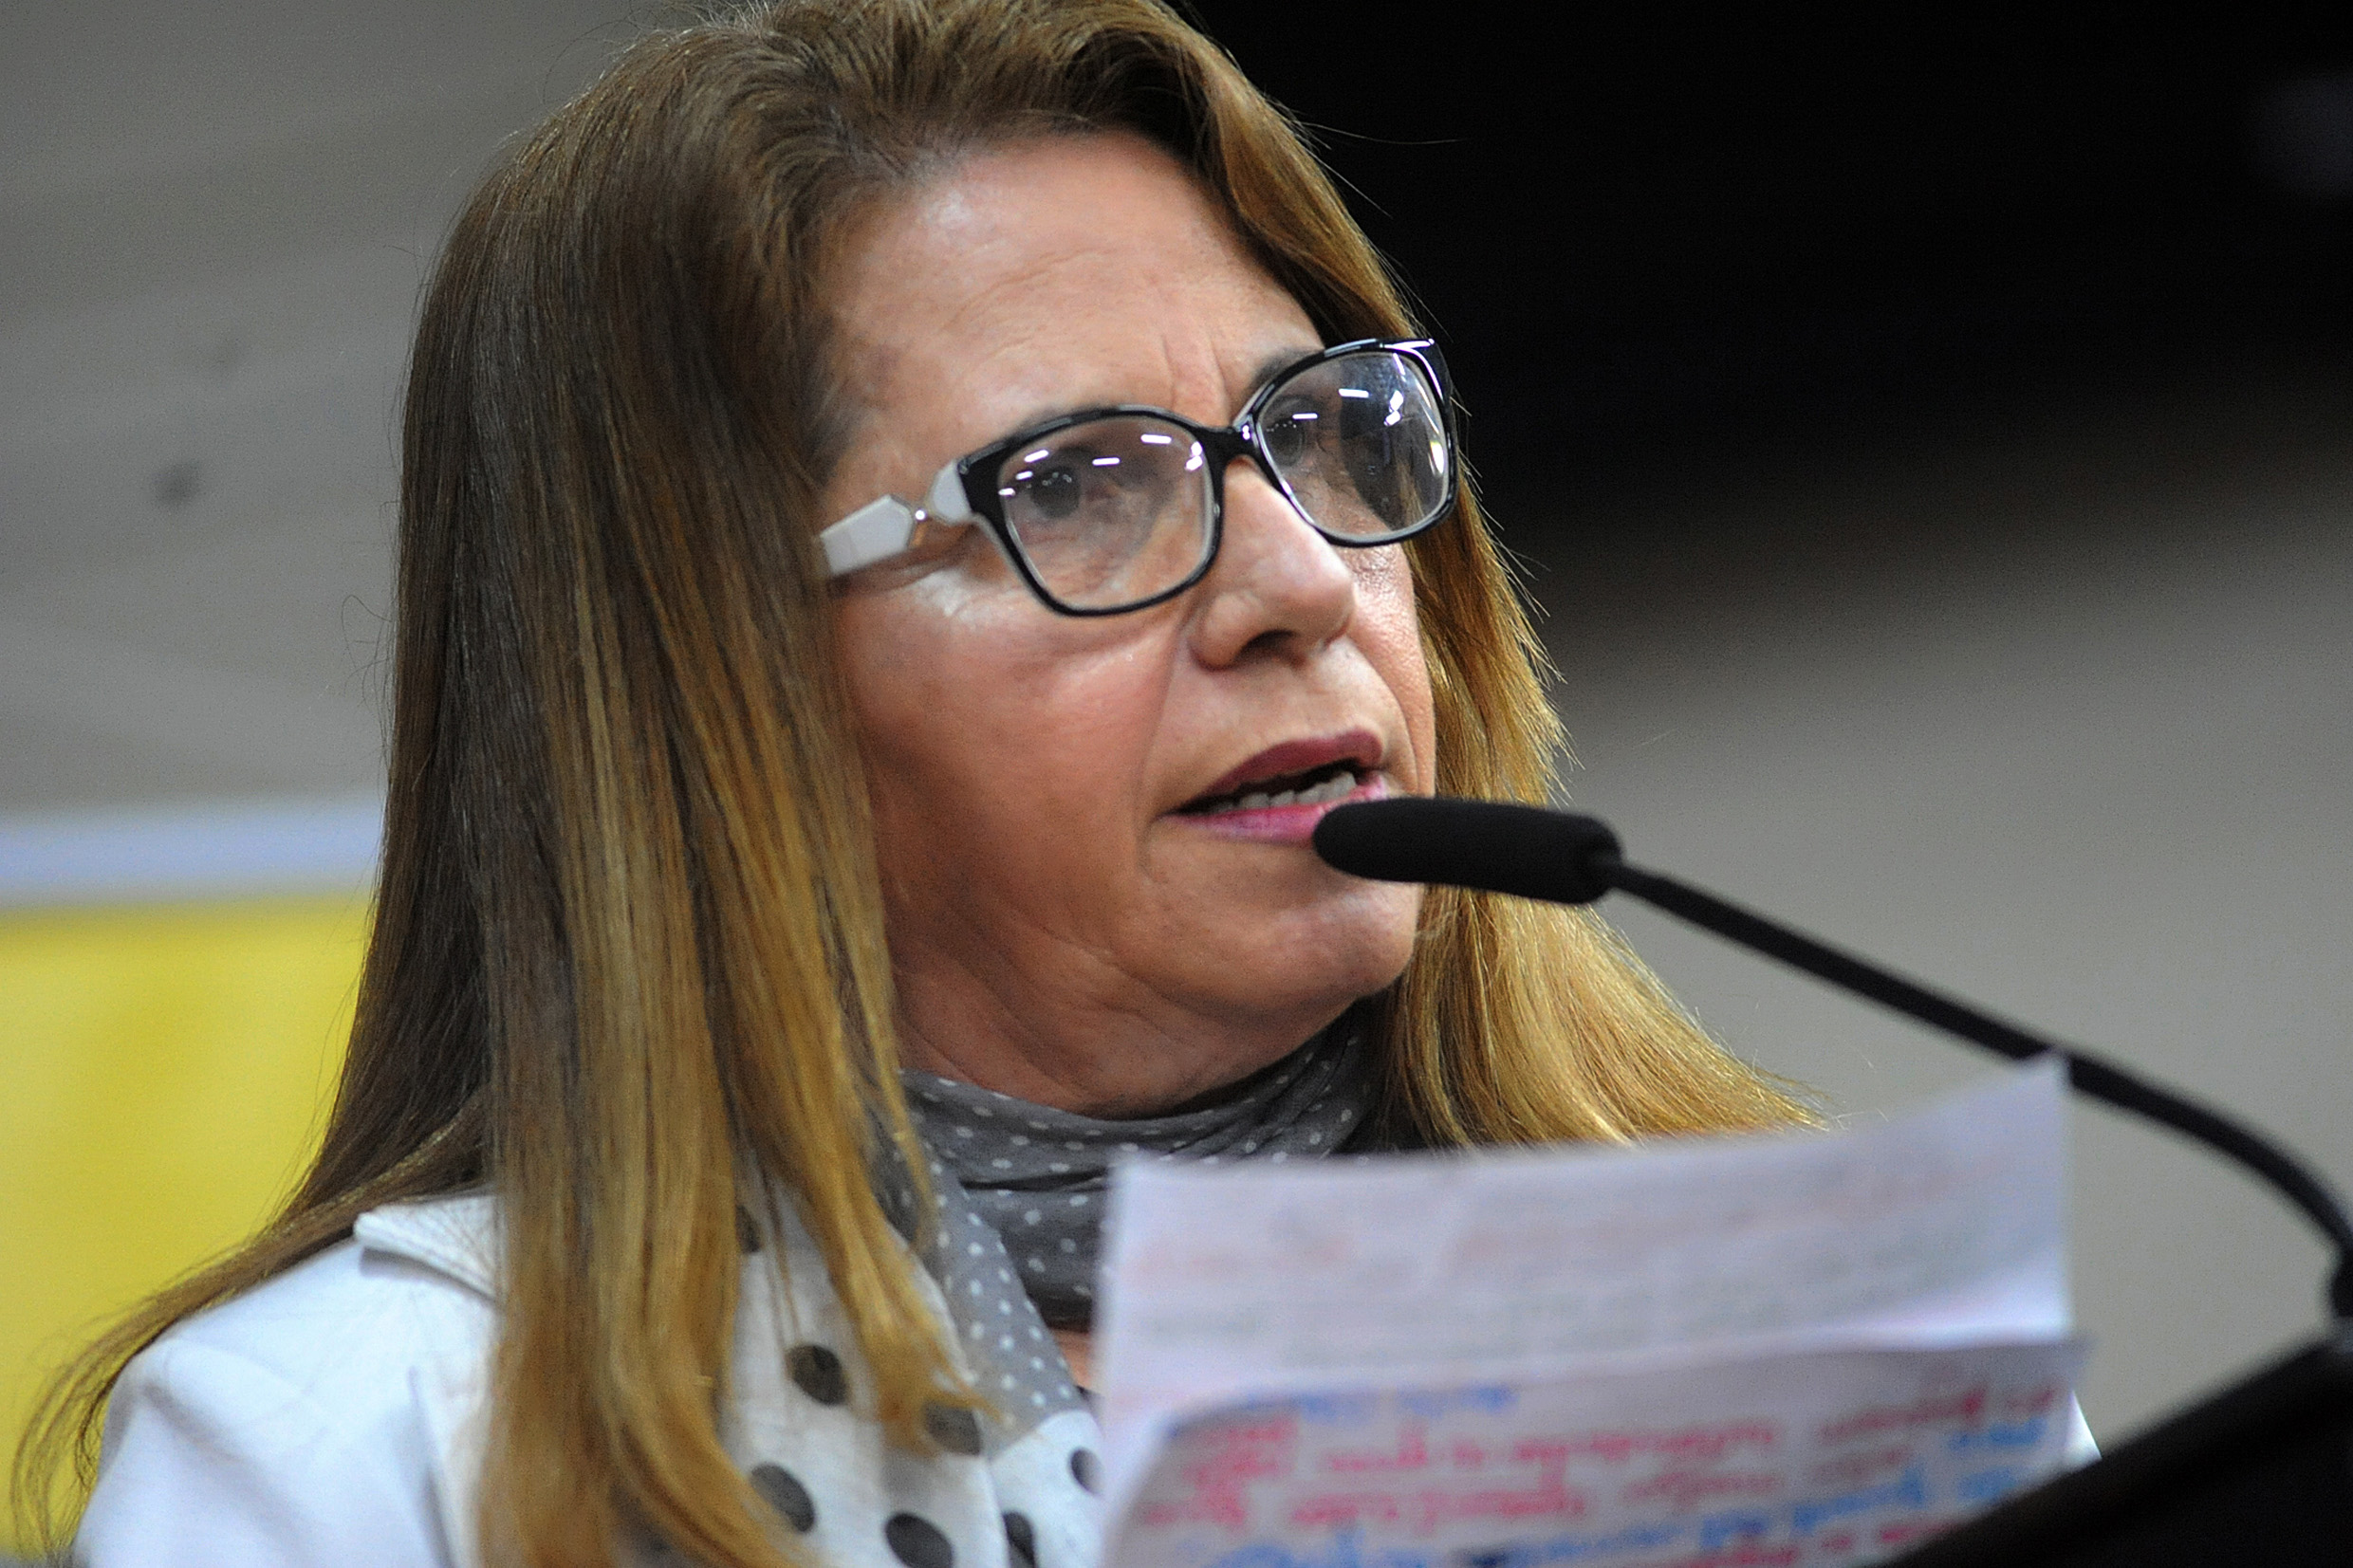 Maria Auxiliadora Murad<a style='float:right' href='https://www3.al.sp.gov.br/repositorio/noticia/N-06-2016/fg191984.jpg' target=_blank><img src='/_img/material-file-download-white.png' width='14px' alt='Clique para baixar a imagem'></a>